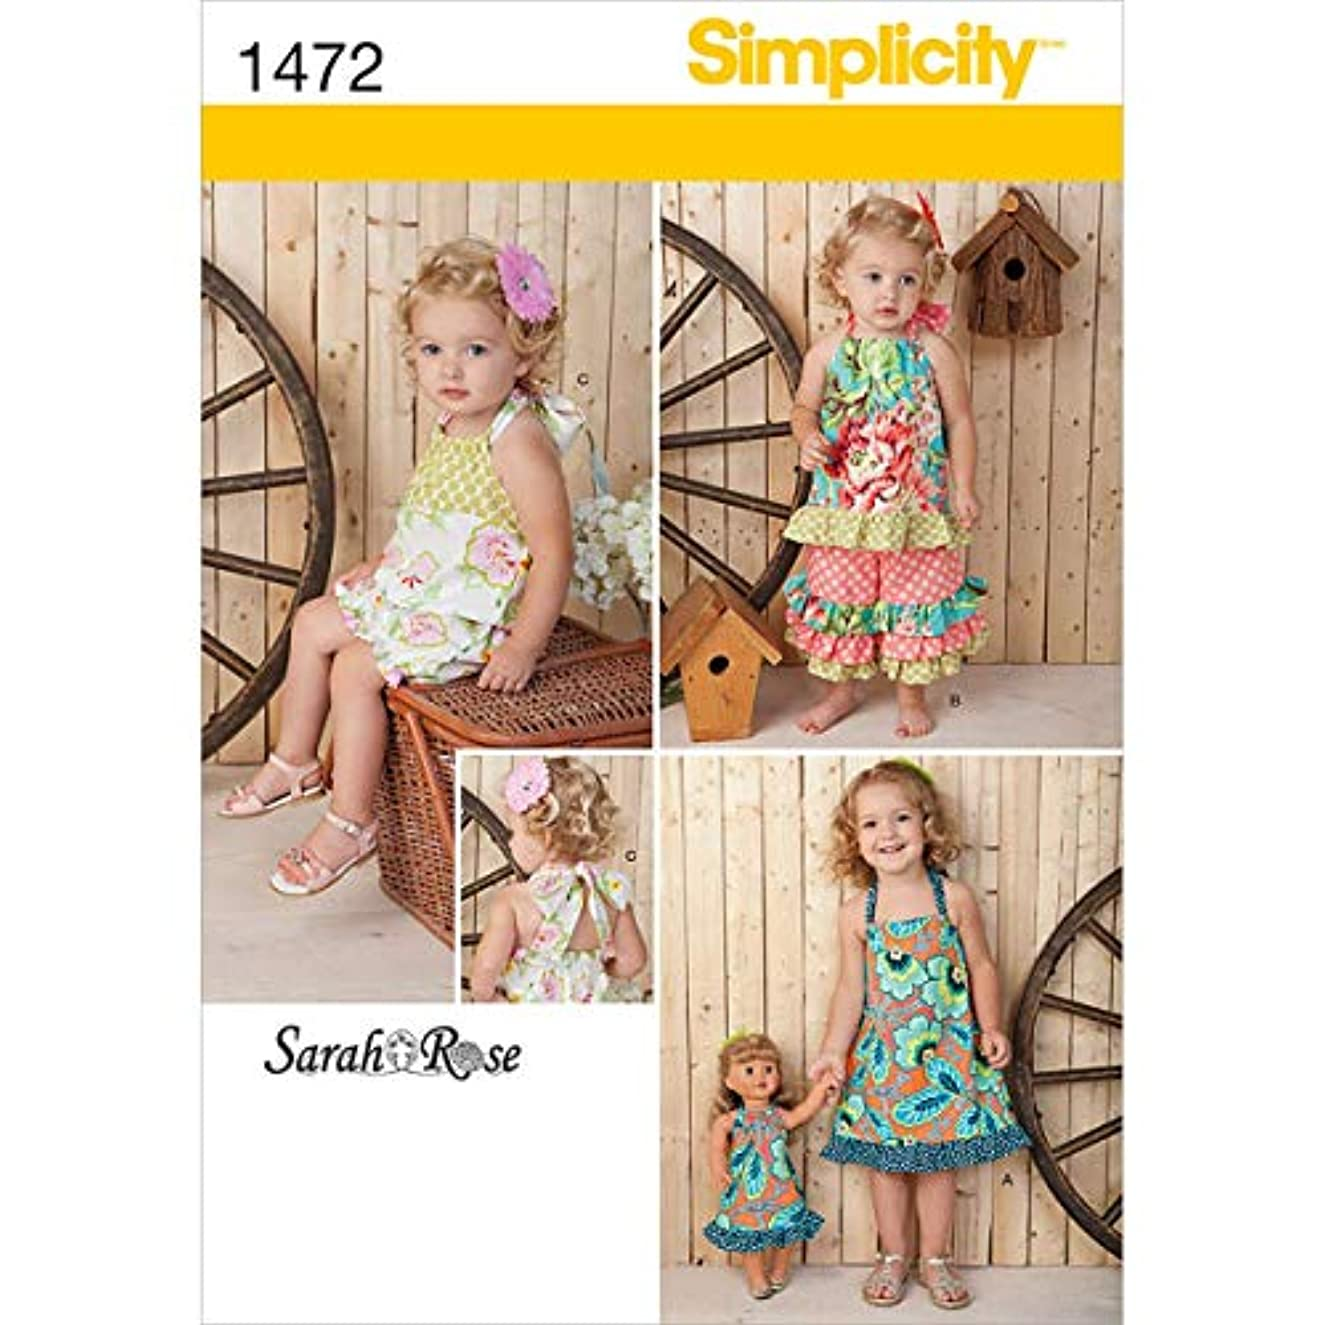 Simplicity 1472 18'' Doll and Toddler's Matching Romper, Dress, Top, and Pants Sewing Pattern, Sizes 1/2-4